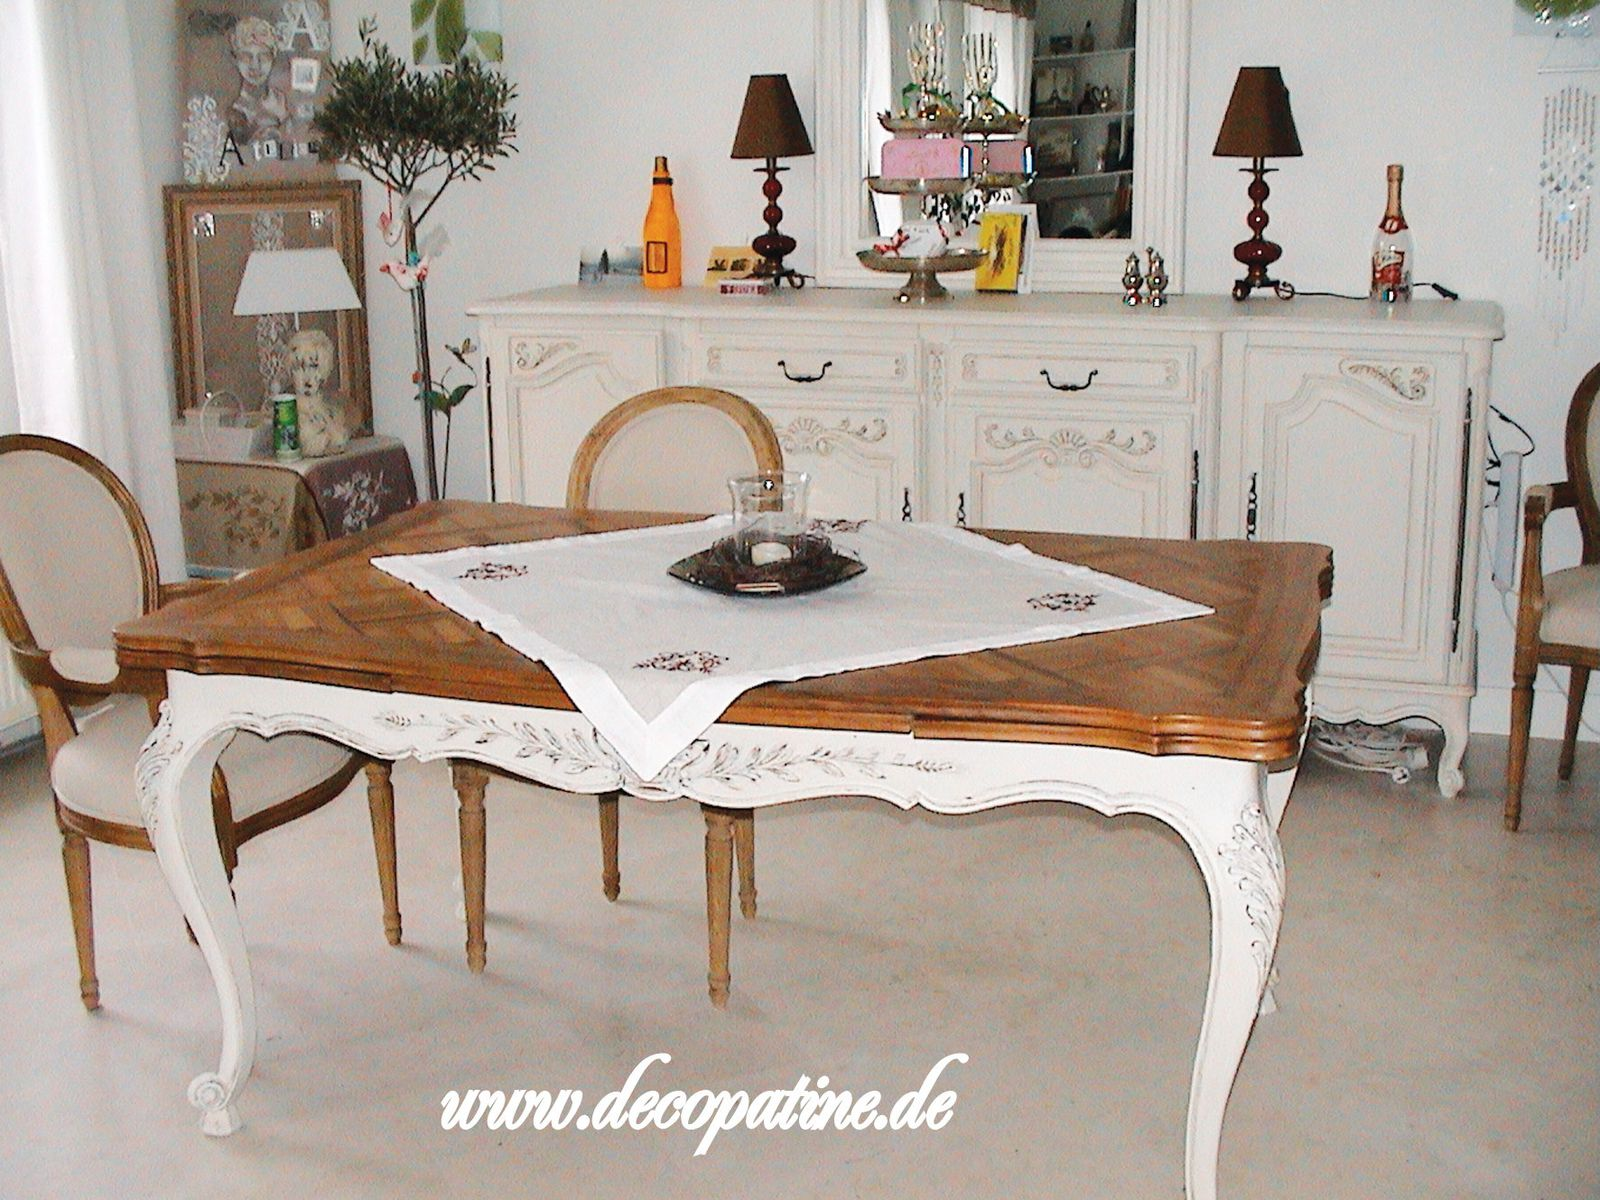 relooking deco patine workshops zum relooking von m beln im shabby chic french chic country. Black Bedroom Furniture Sets. Home Design Ideas